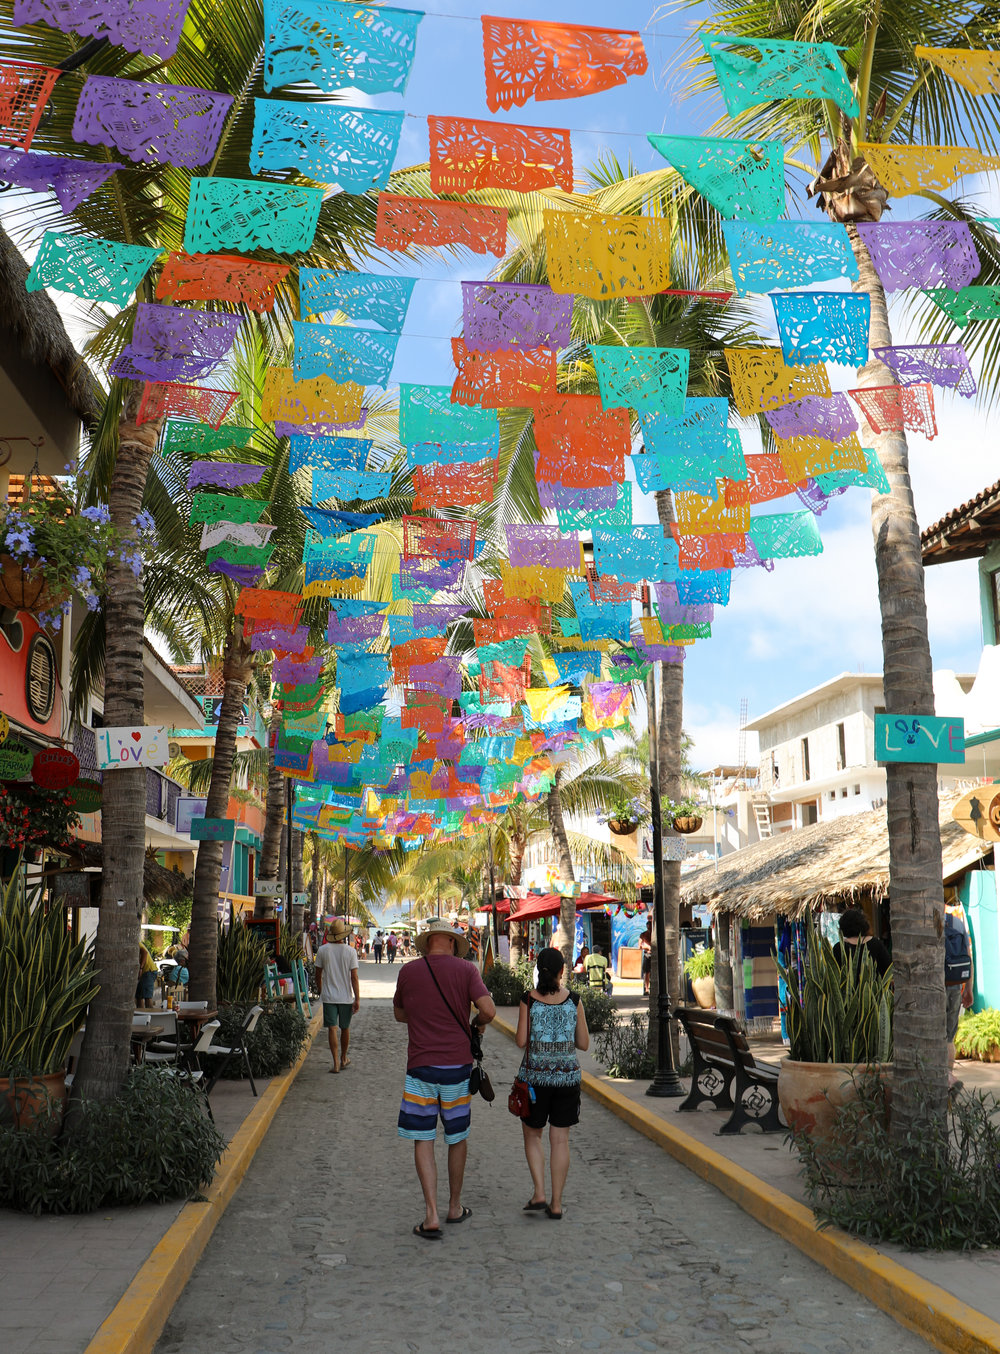 Wandering the colorful streets of Sayulita.